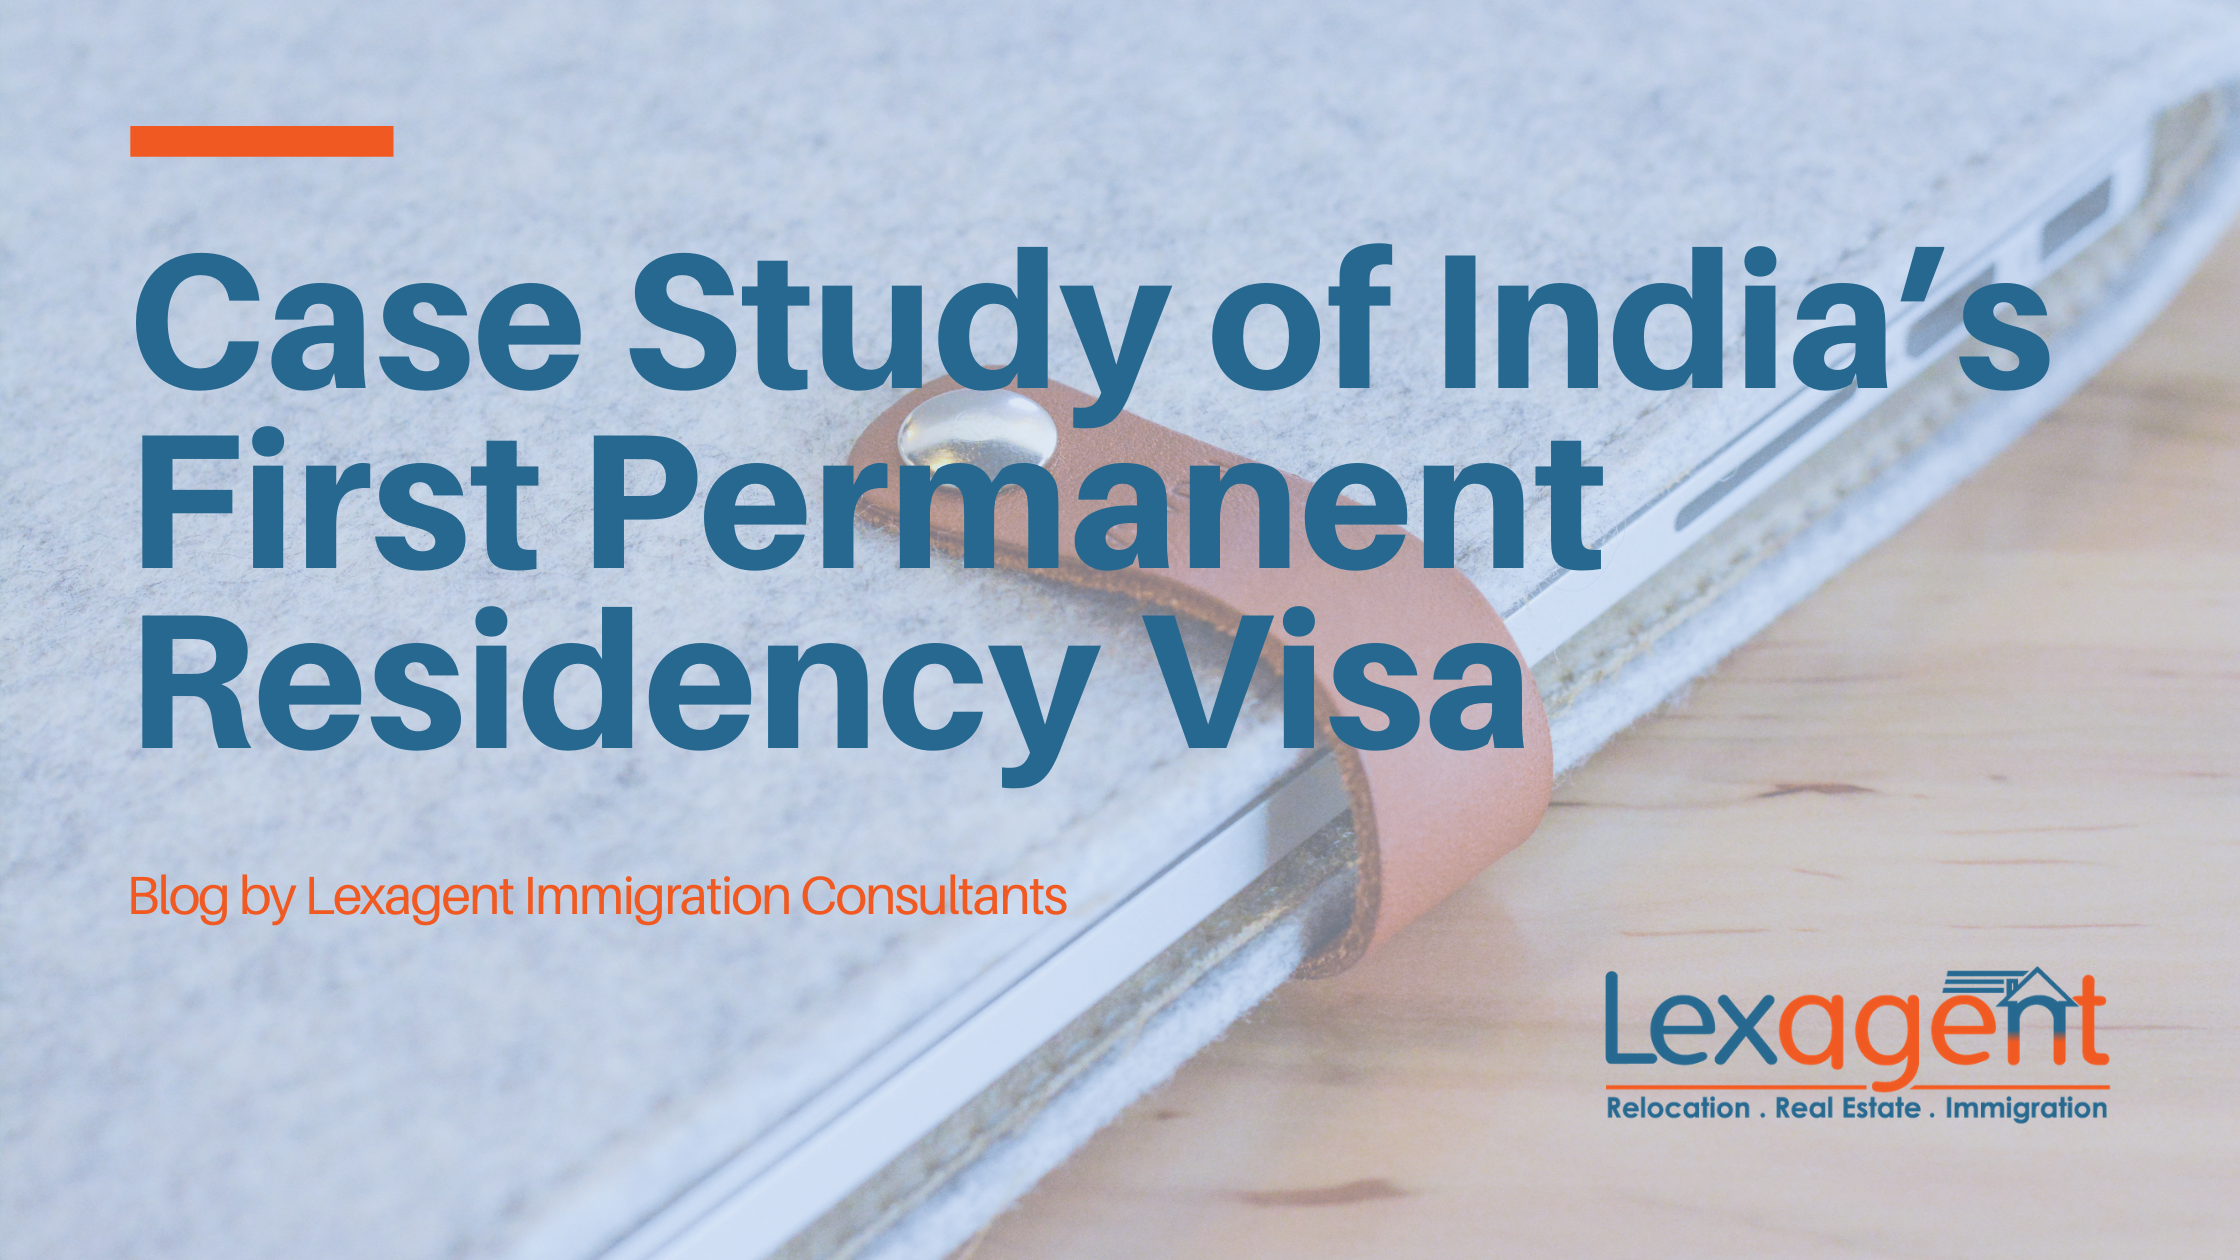 Case Study of India's First Permanent Residency Status